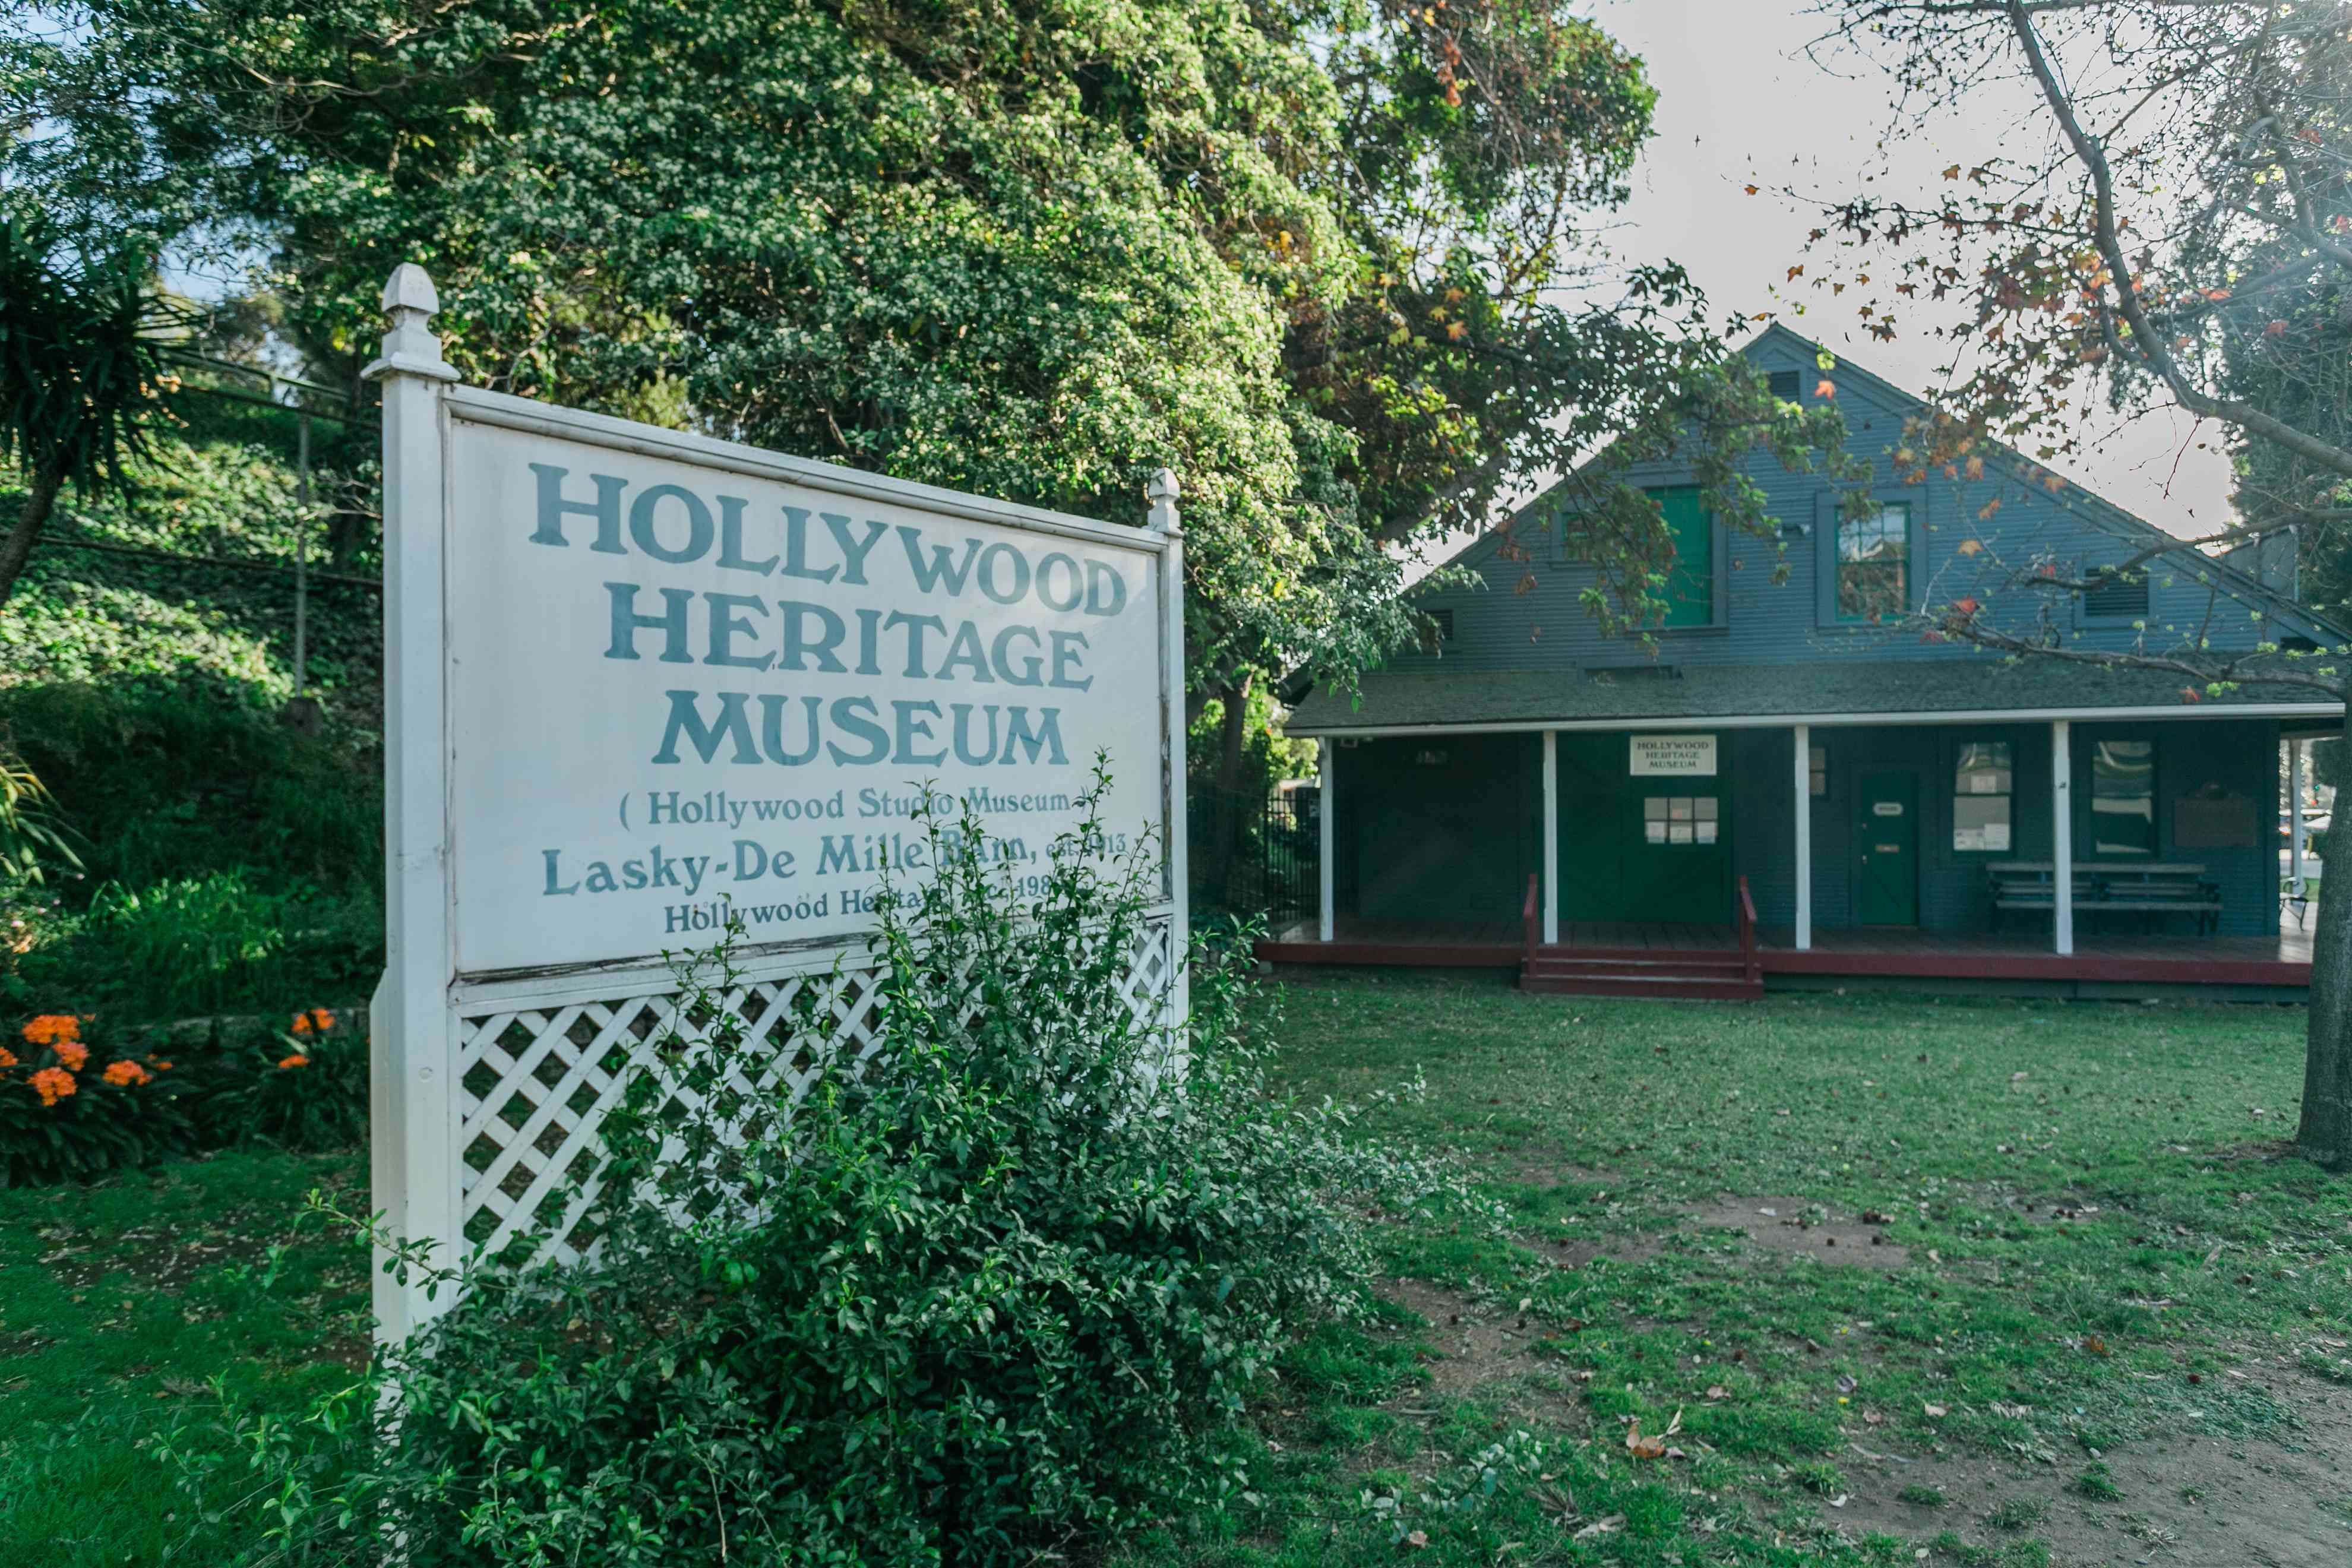 Hollywood Heritage Museum in LA